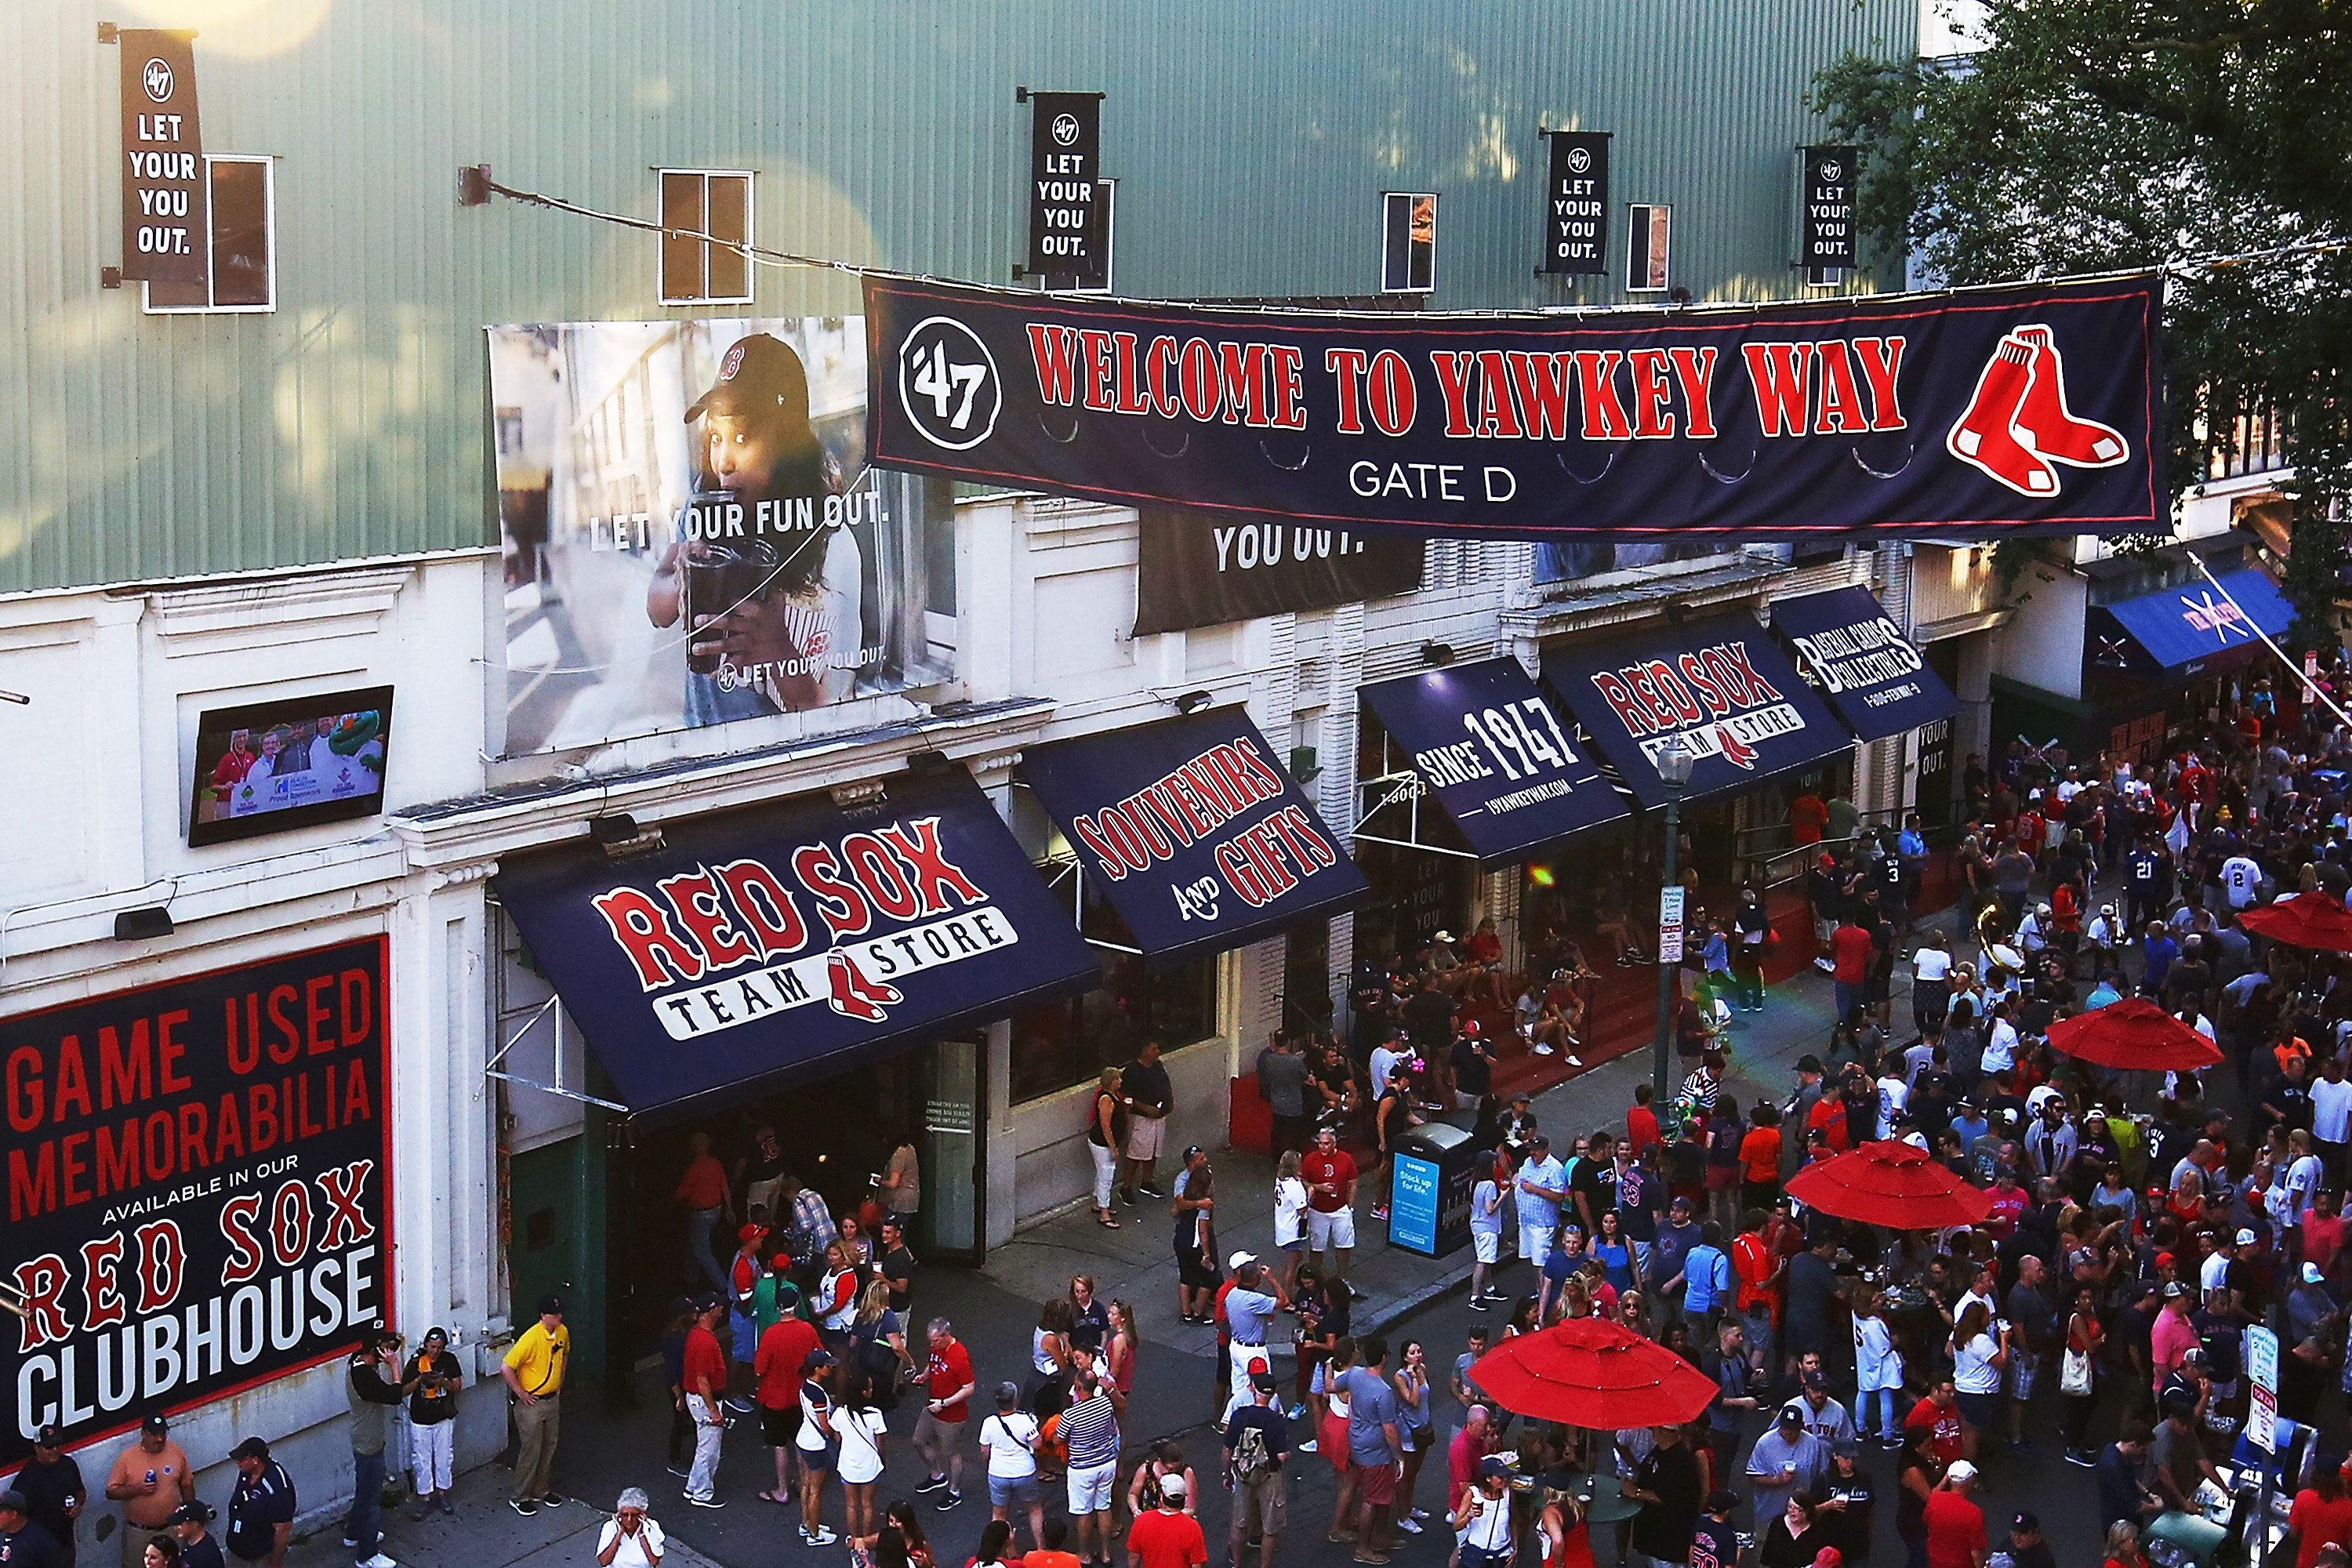 Boston approves Yawkey Way name change